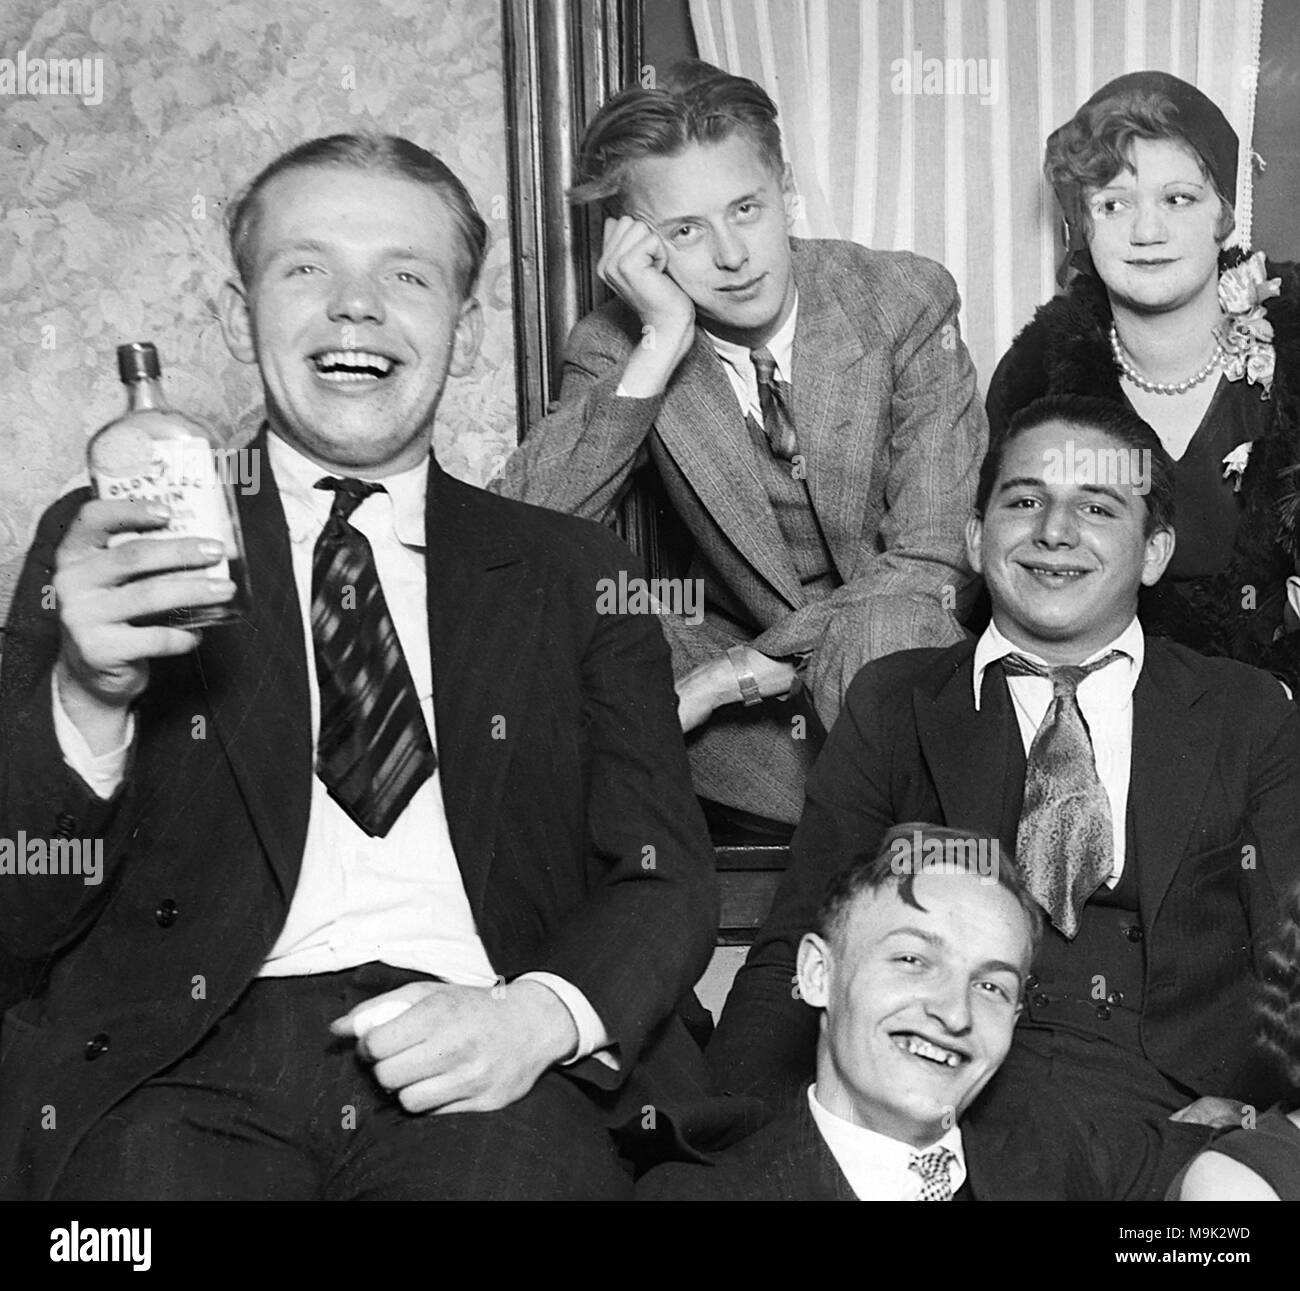 """Young people drink bootleg whiskey labeled """"Old Log Cabin"""" during Prohibition in Chicago in 1927.  """"Old Log Cabin"""" was Canadian Club Whiskey imported by gangster Al Capone and Bugs Moran then rebottled and distributed in the Chicago area. - Stock Image"""